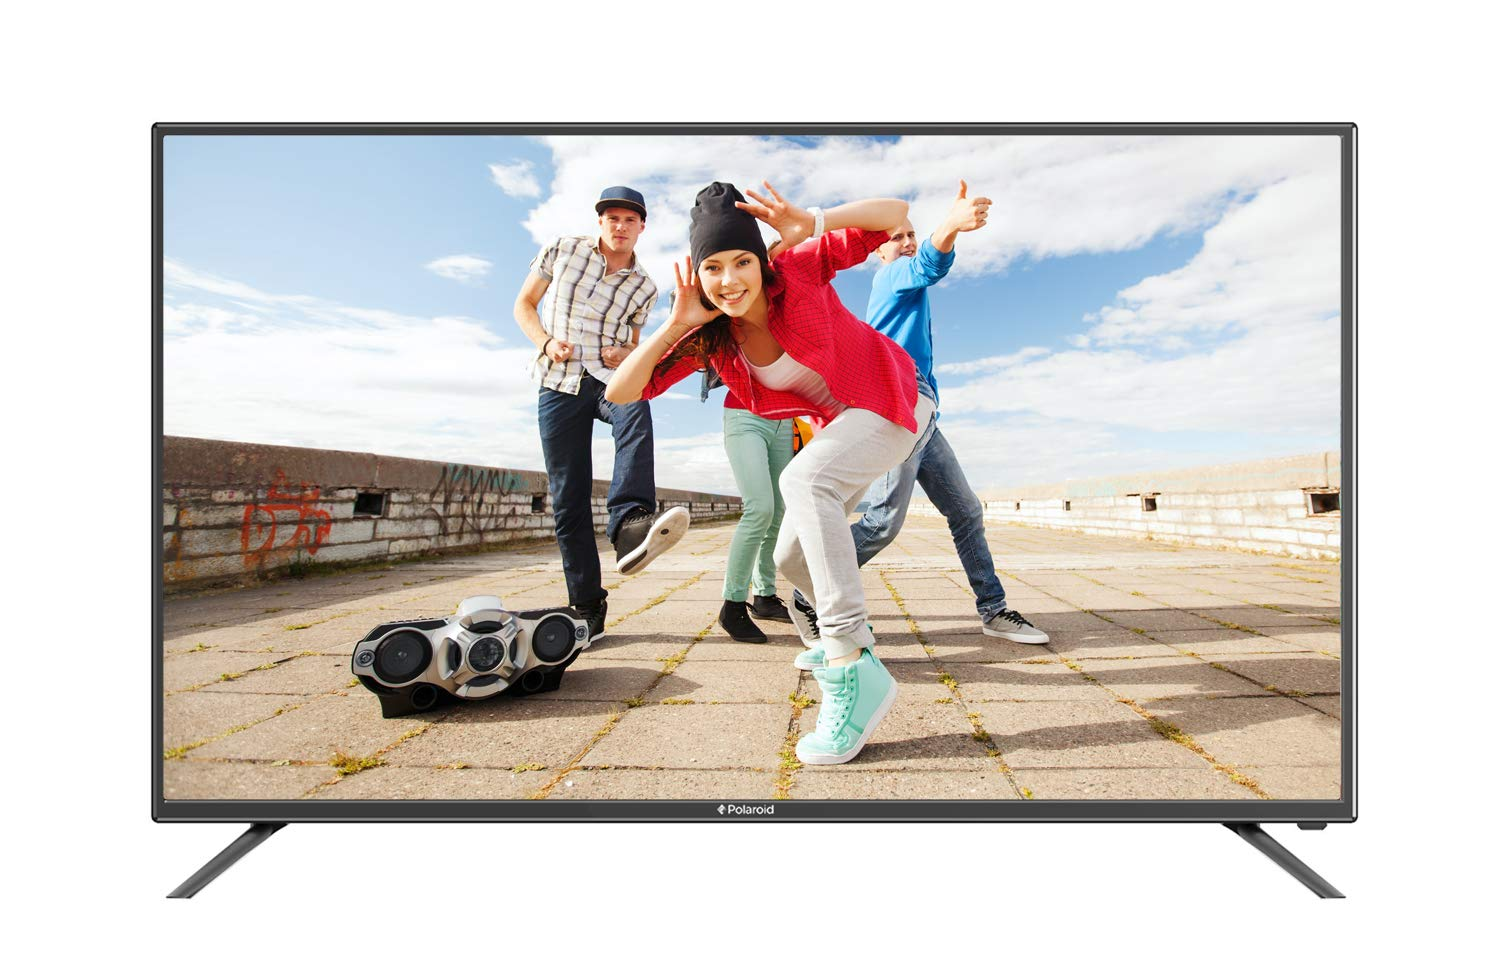 Polaroid A50UM7S 50-Inch 4K Smart LED TV, Black (2018) Hot New TV Deals $399.99